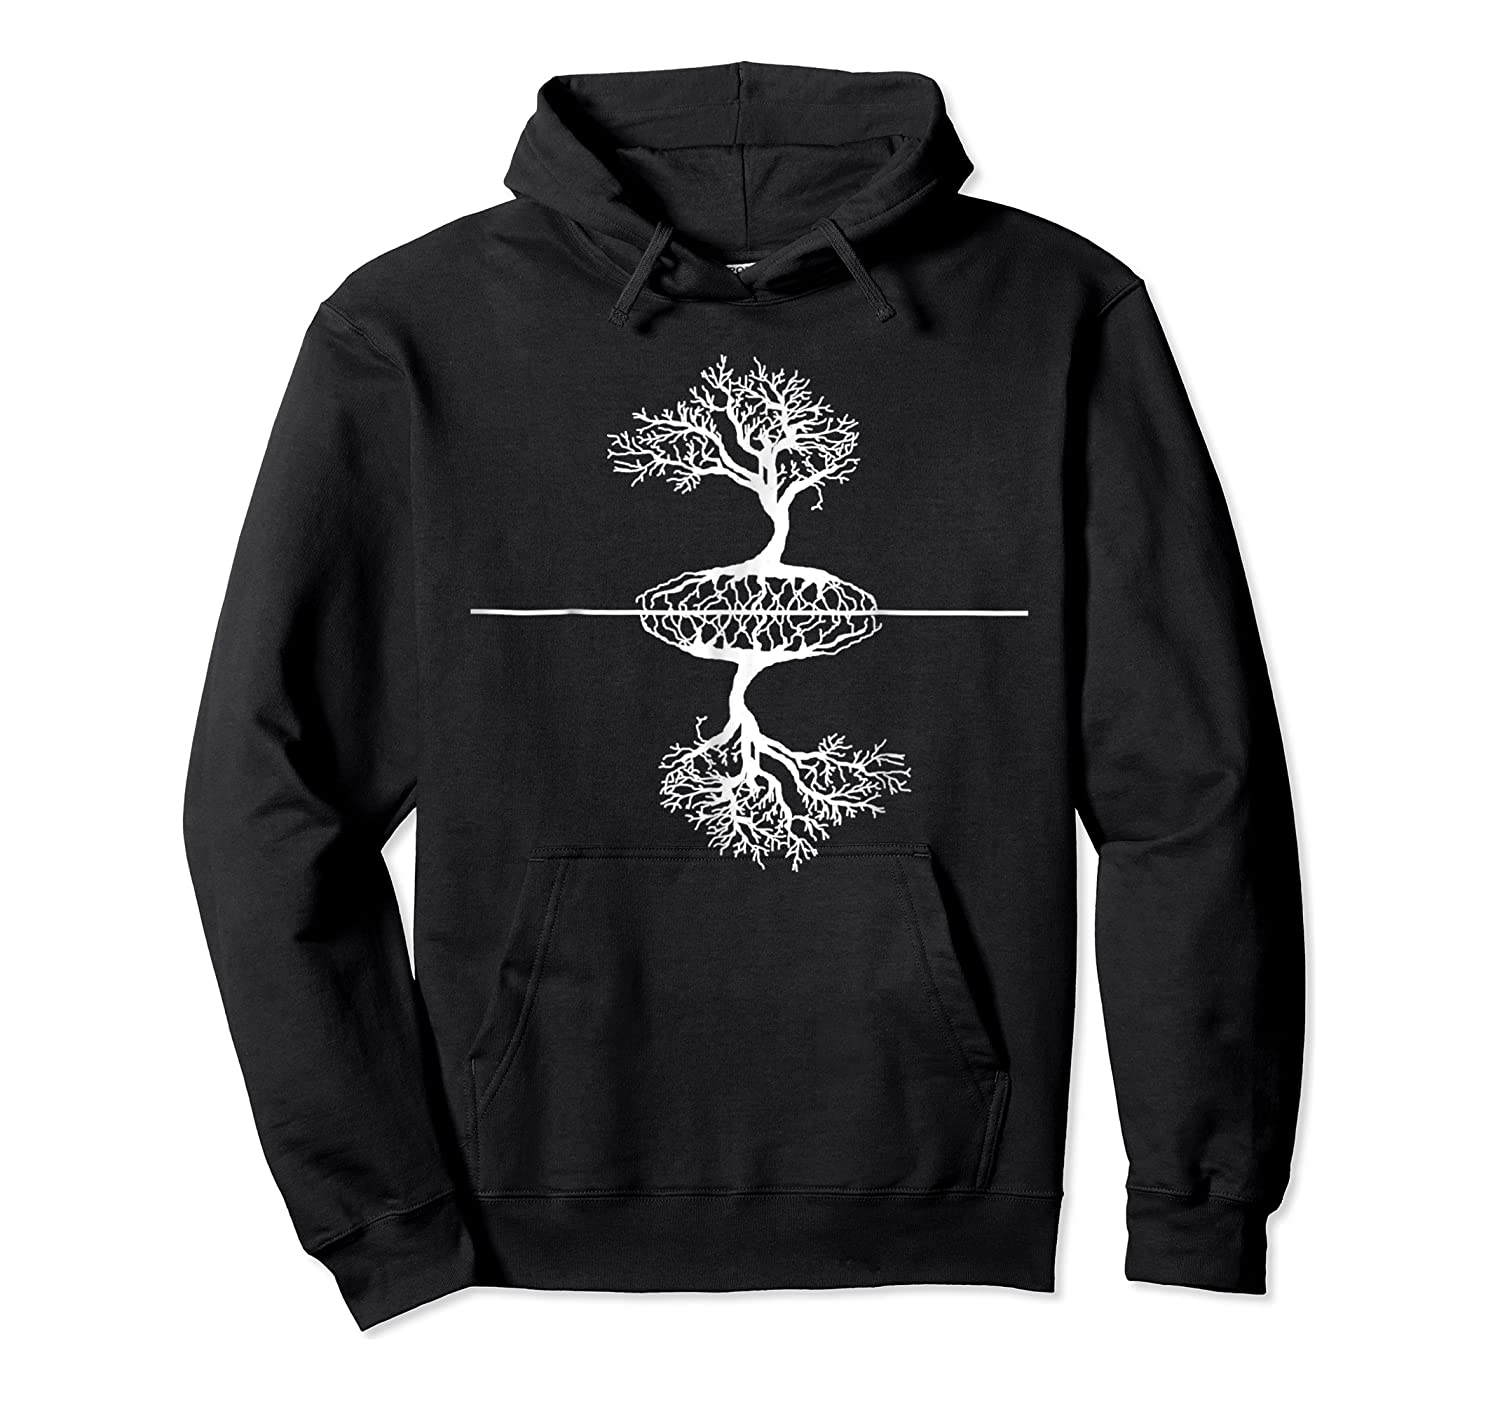 Artist Reflection Tree Of Life Shirts Unisex Pullover Hoodie